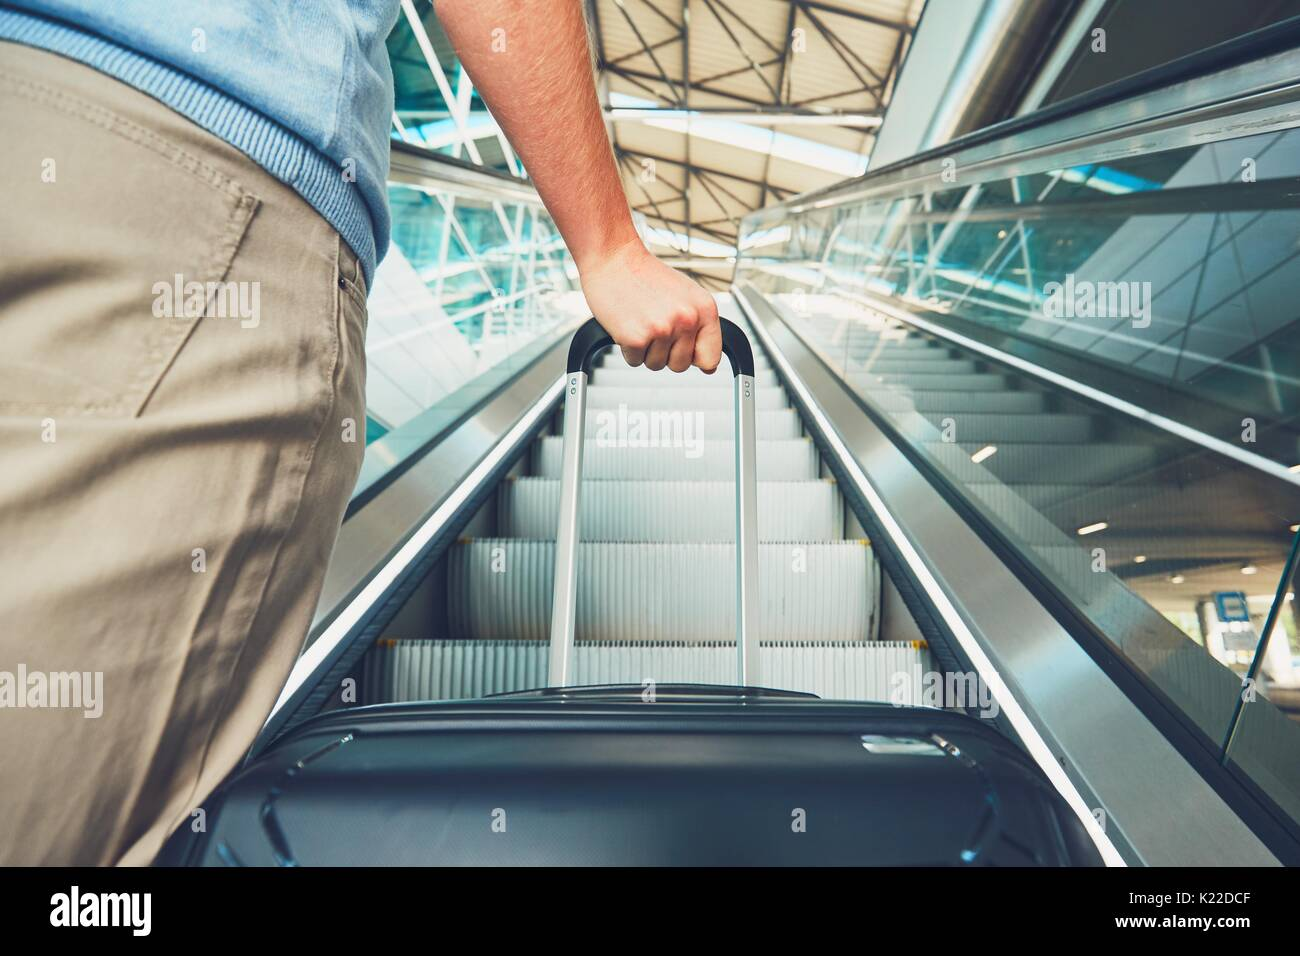 Man traveling by airplane. Hand of the passenger with luggage on the escalator at the airport. - Stock Image